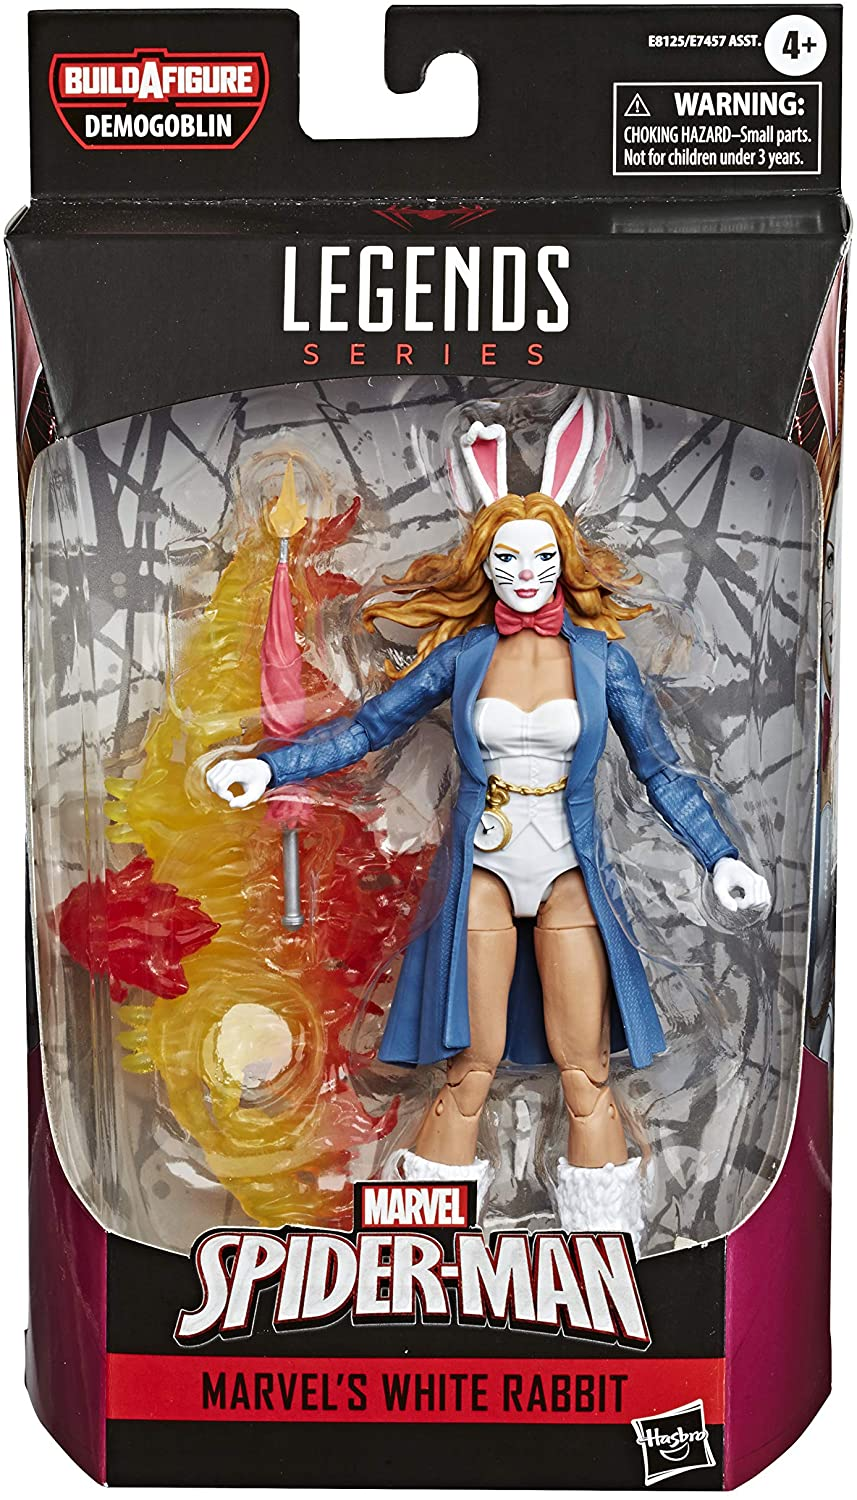 Hasbro Marvel Legends Spider-Man - White Rabbit figures